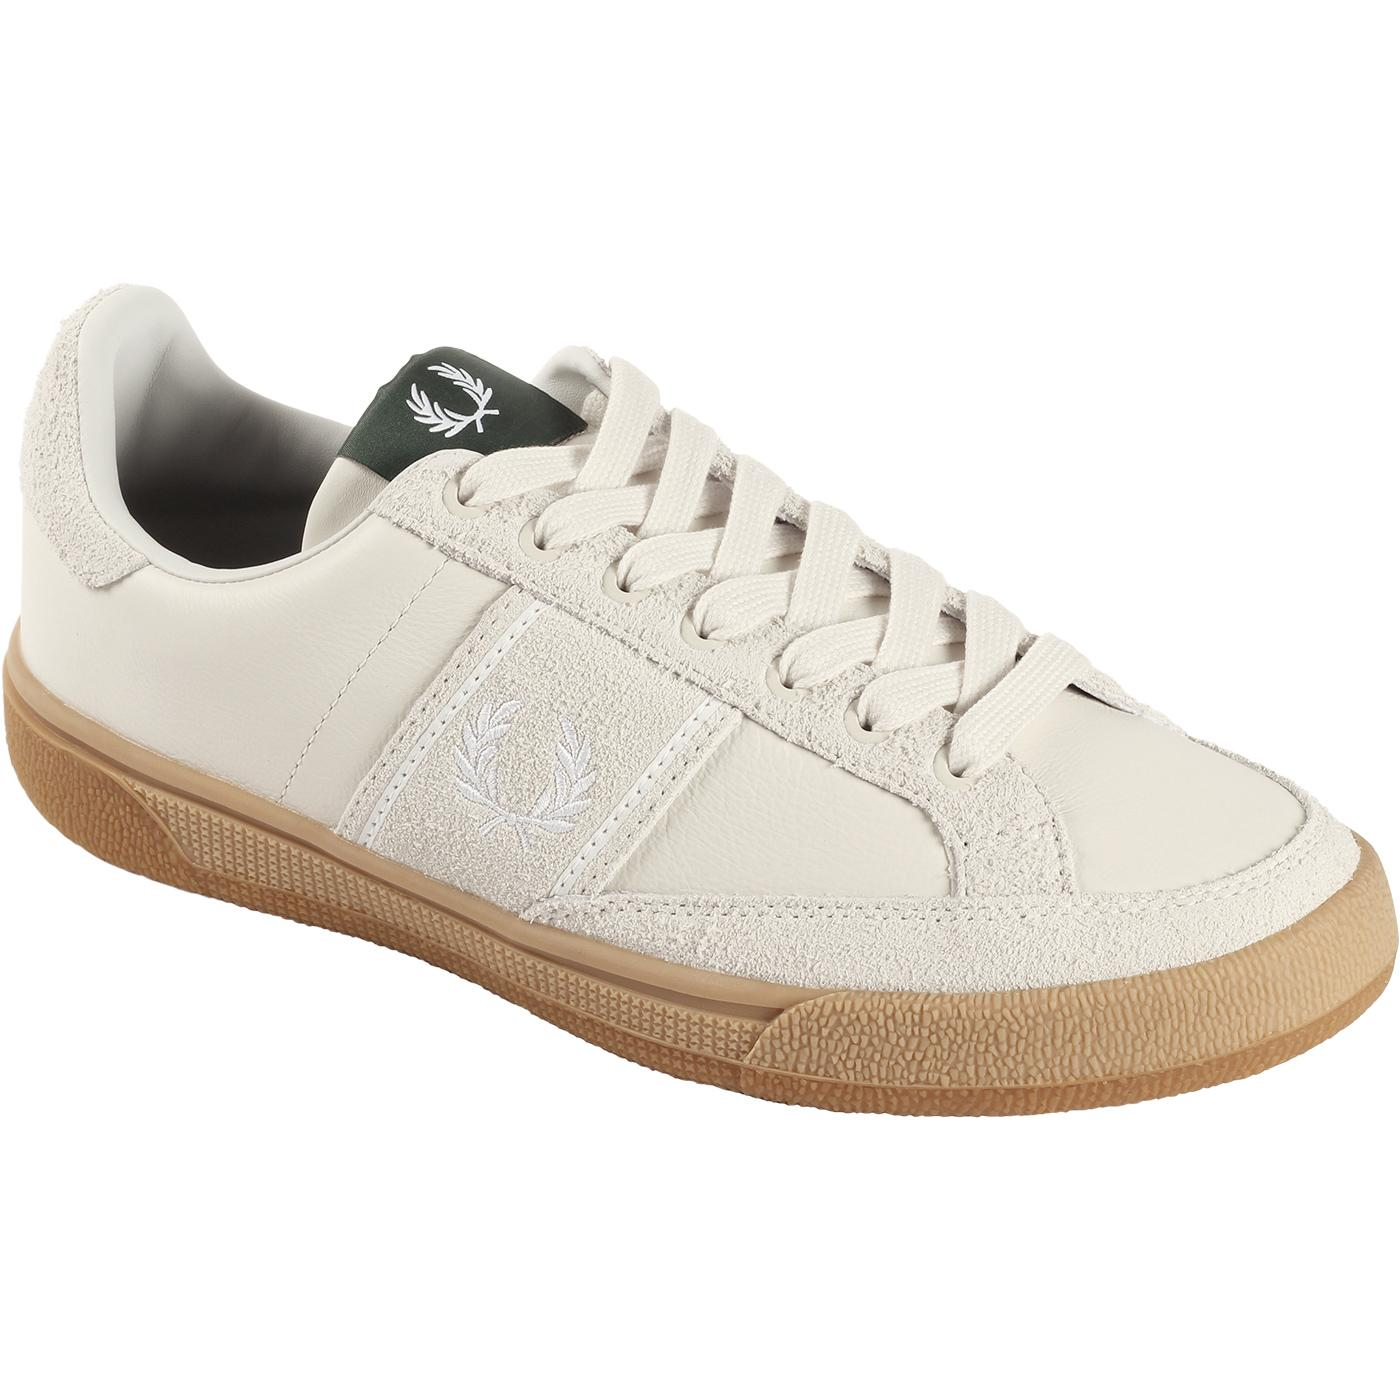 FRED PERRY B3 Leather/Suede Retro Tennis Trainers